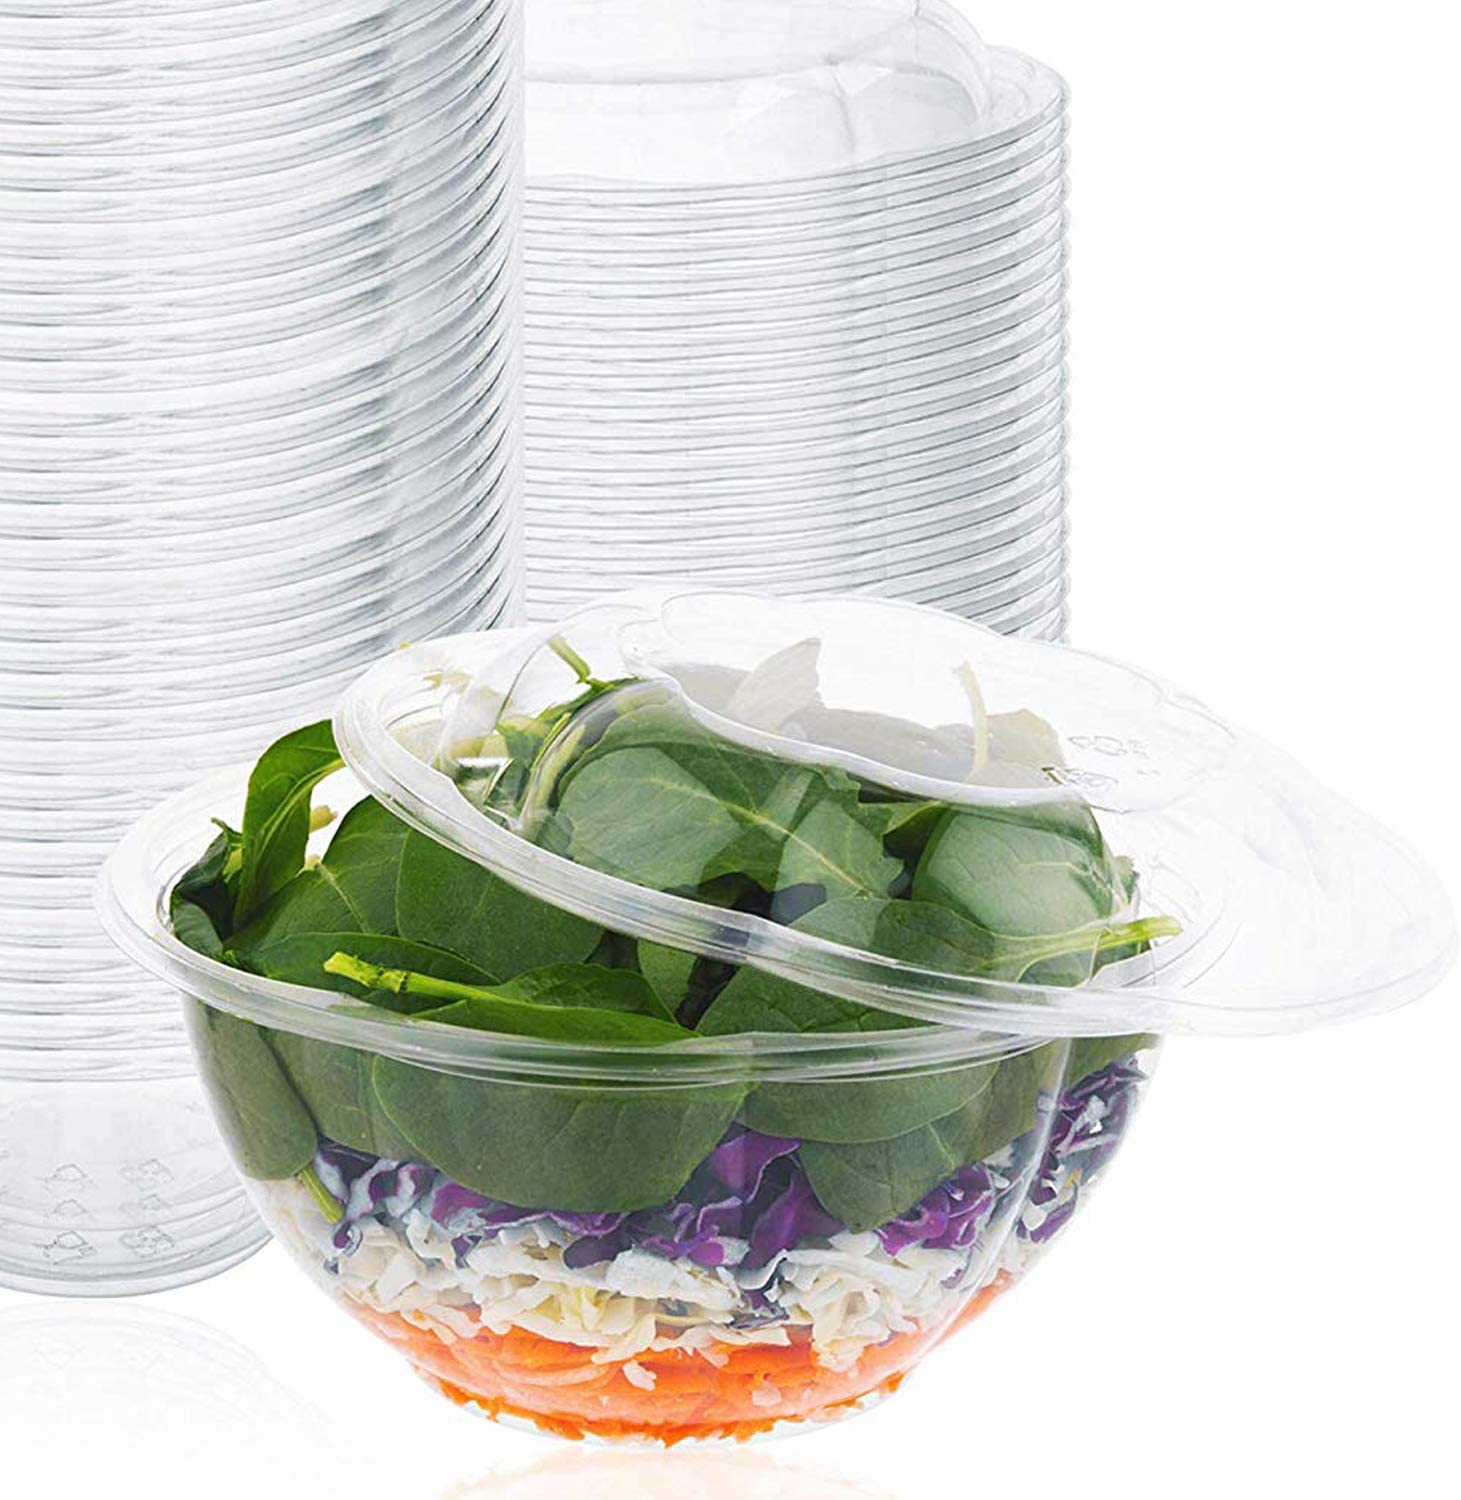 Amazon Com Plastic Salad Bowls 50 Count 32 Oz Disposable Salad Bowls With Lids To Go Container With Airtight Lids Kitchen Dining